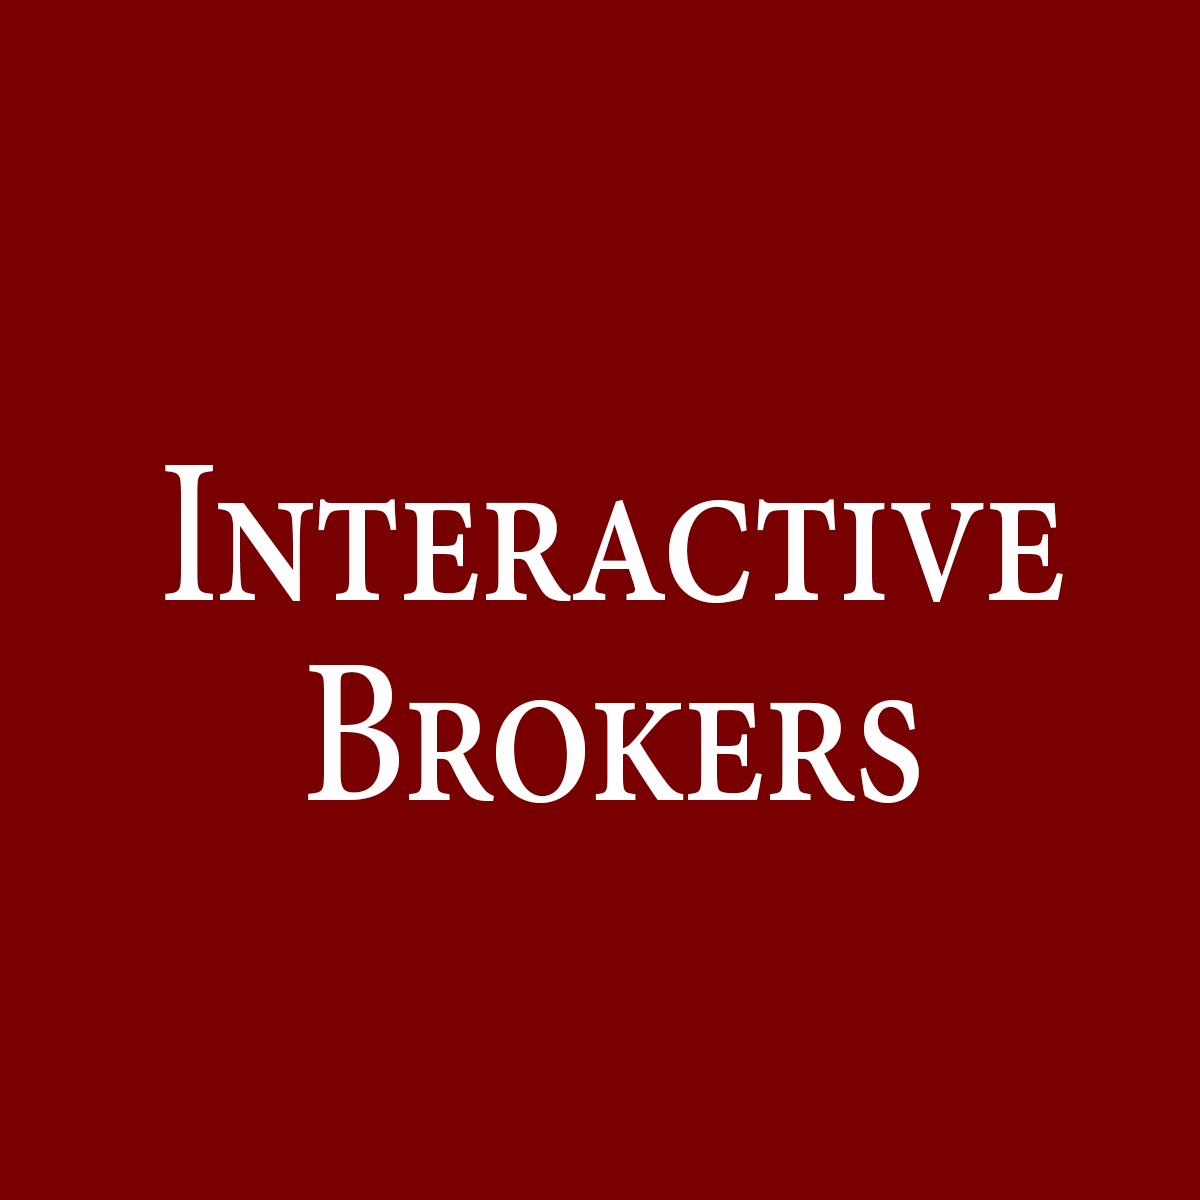 Intercative Brokers.png